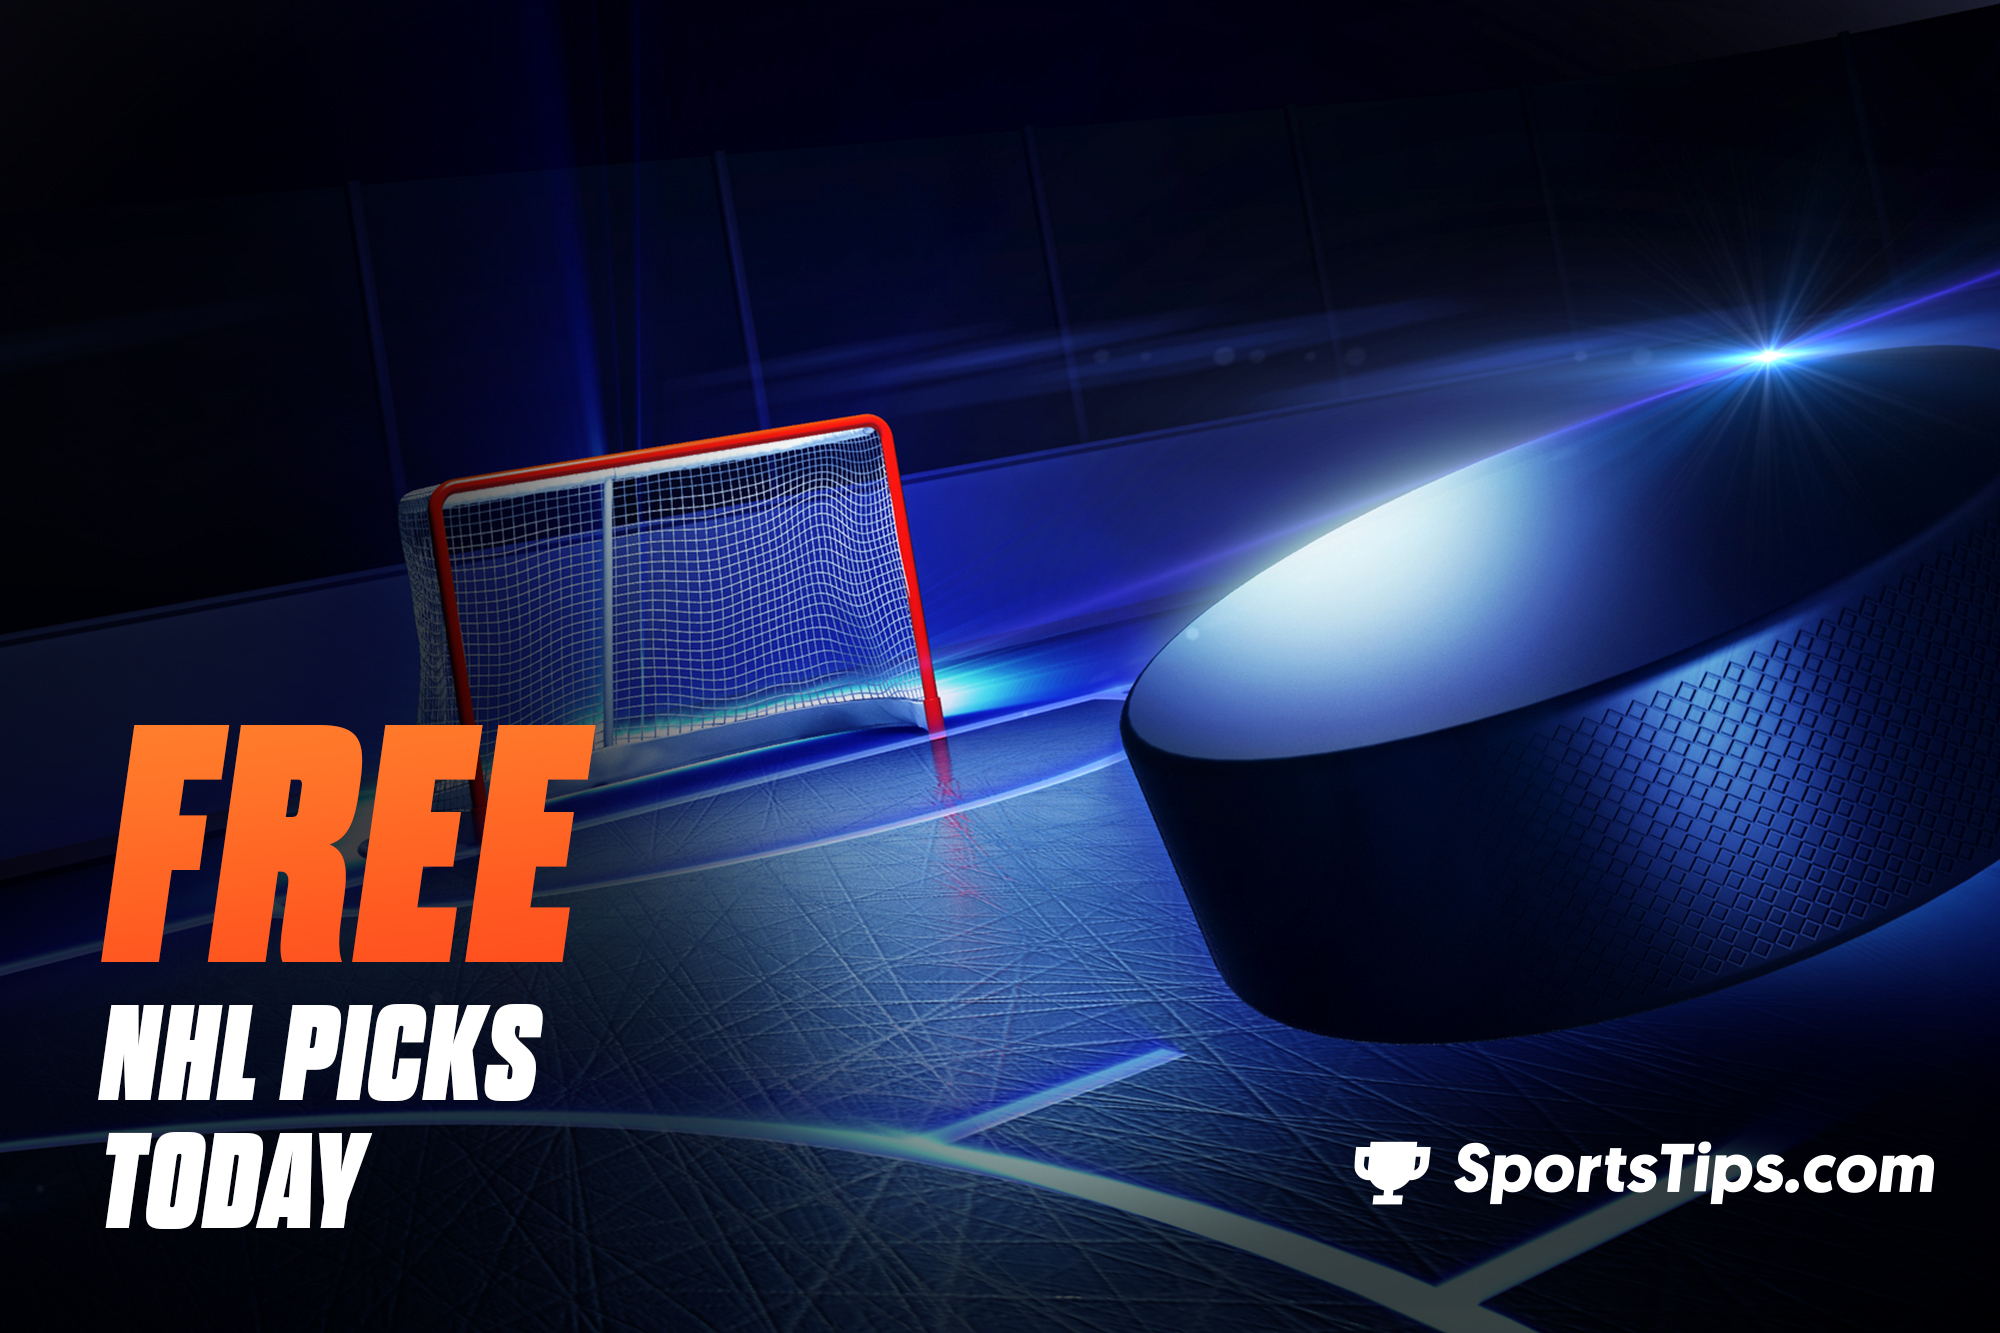 Free NHL Picks Today For Saturday, March 27th, 2021